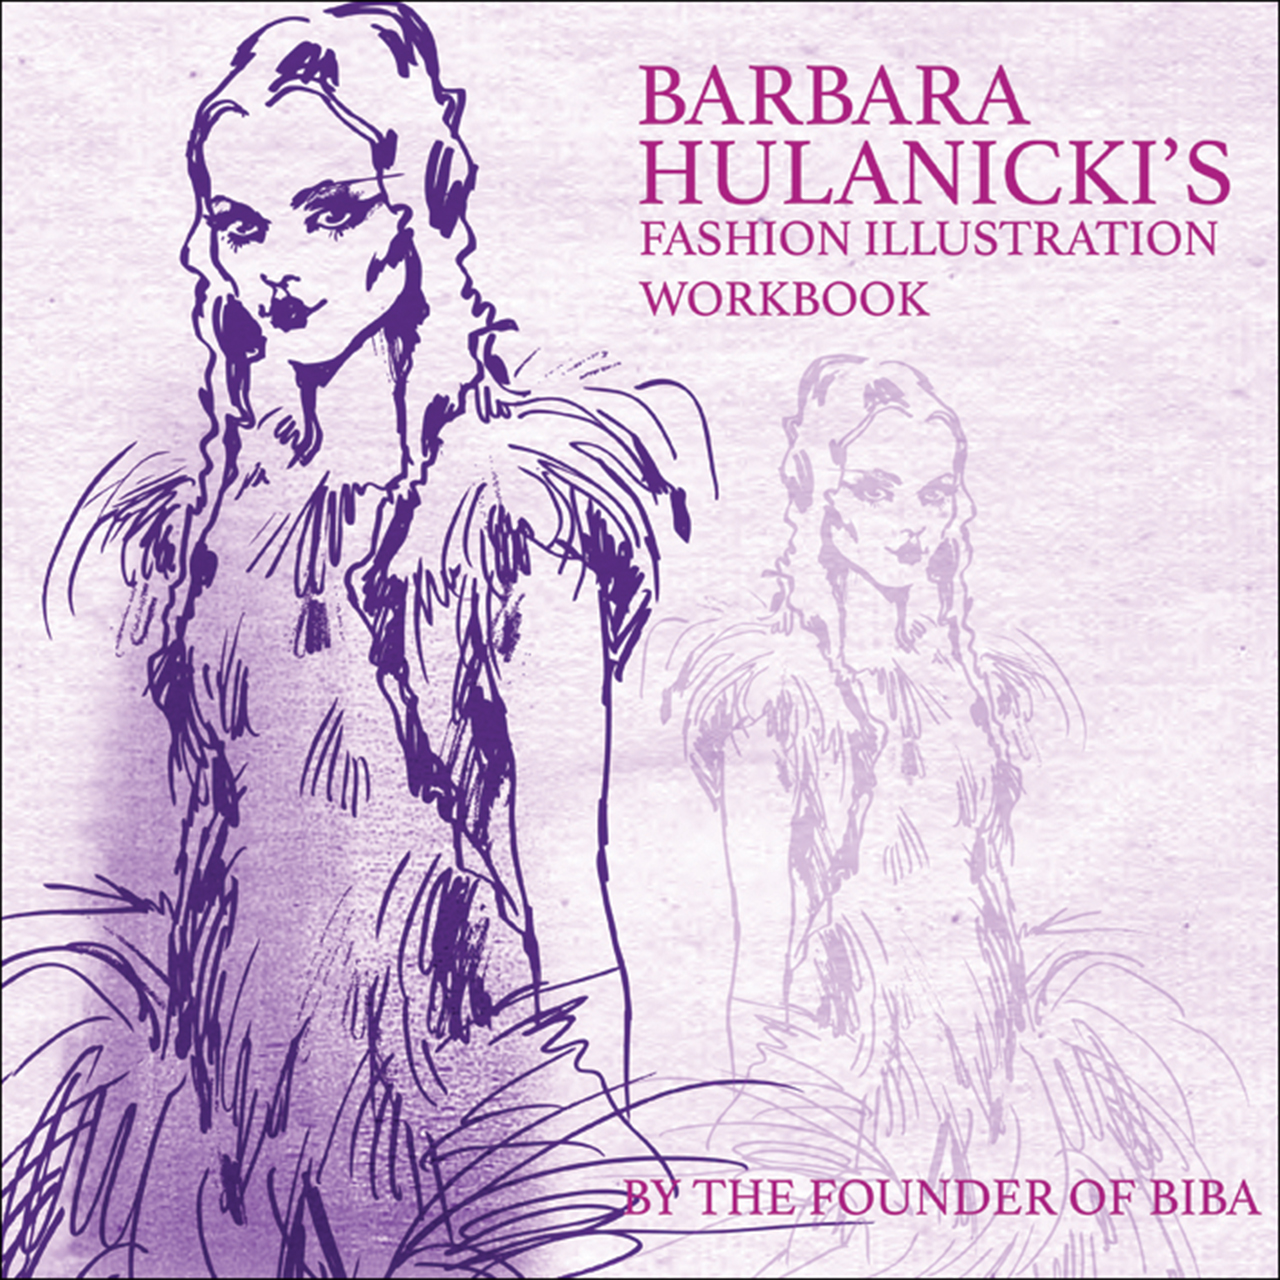 Barbara Hulanicki's Fashion Illustration Workbook